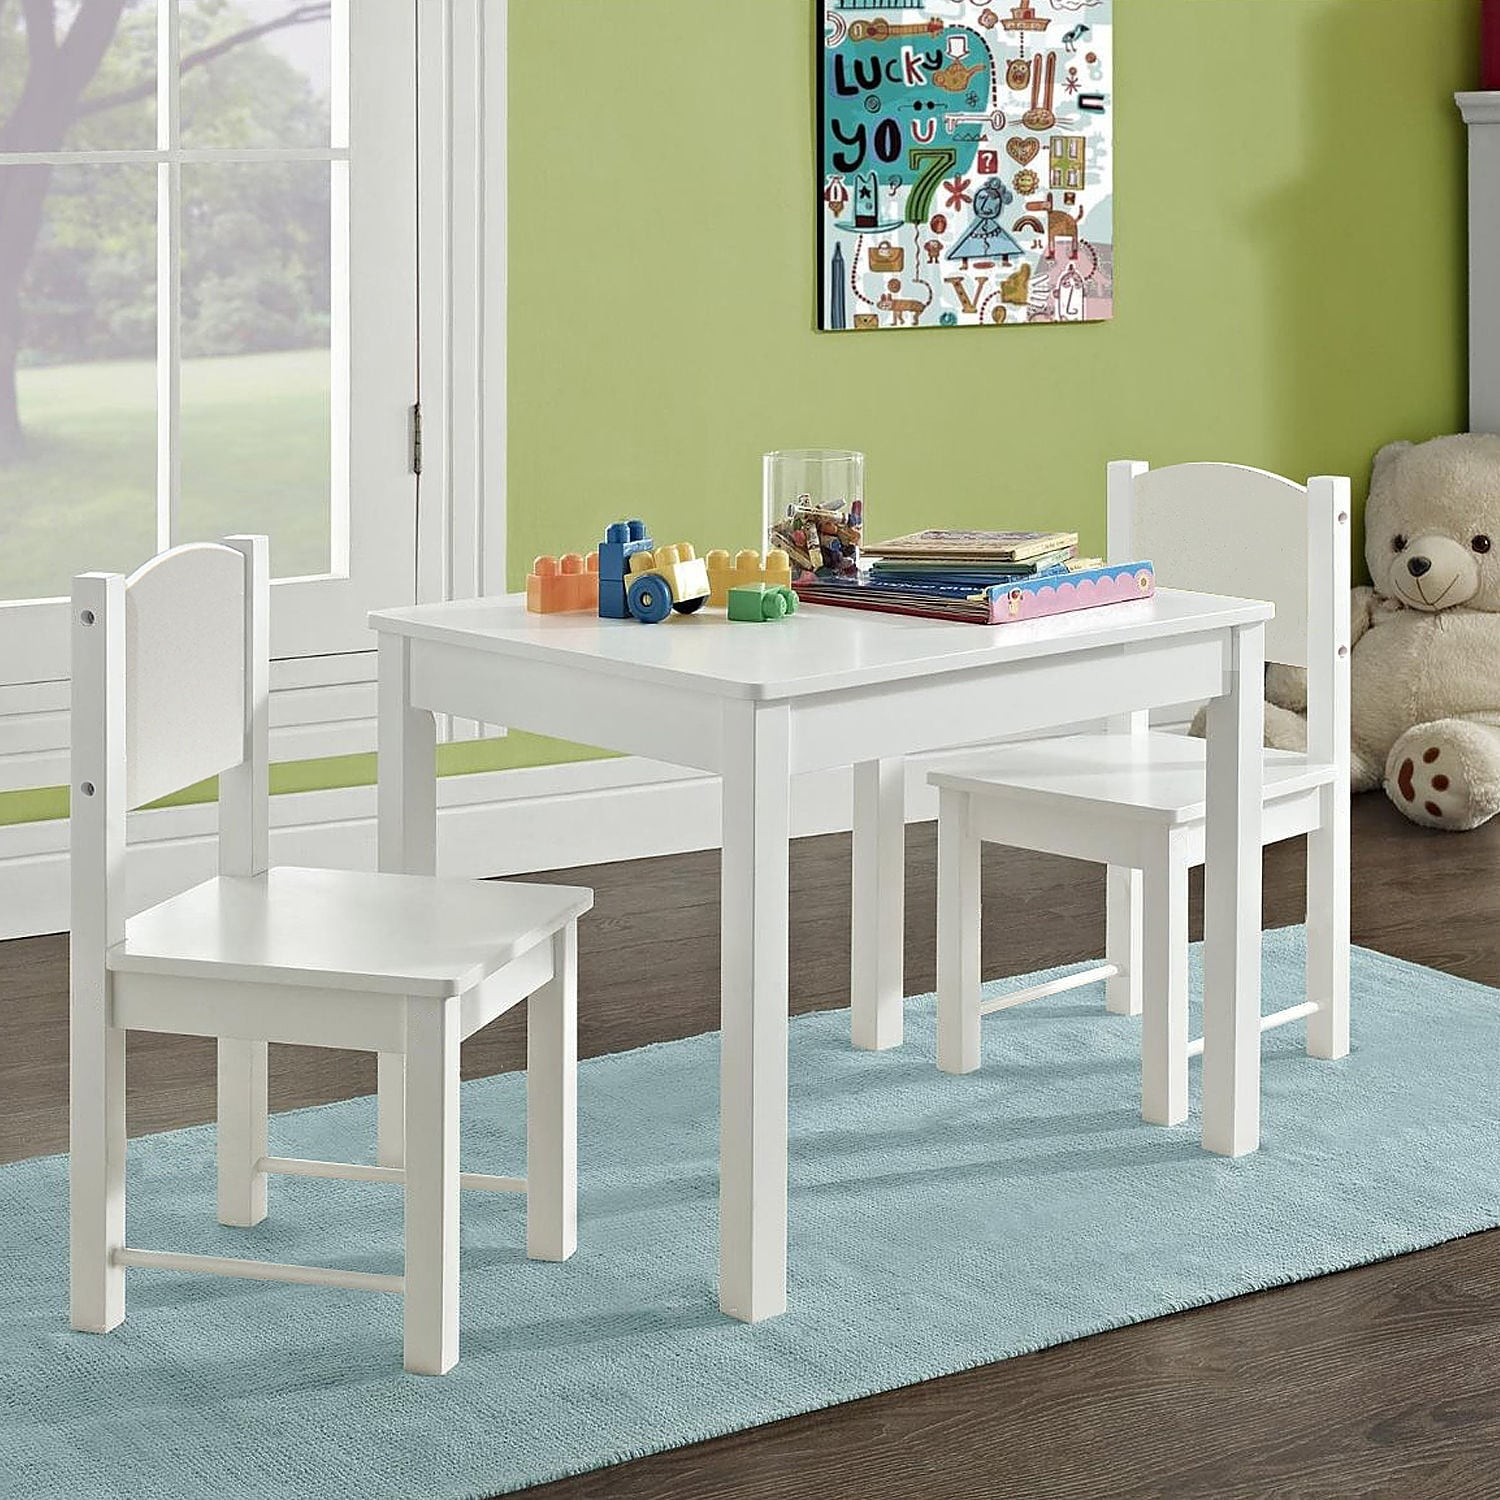 Kid Table And Chair Kid S Table And 2 Chairs Set Solid Hard Wood Sturdy Child Table And Chairs White